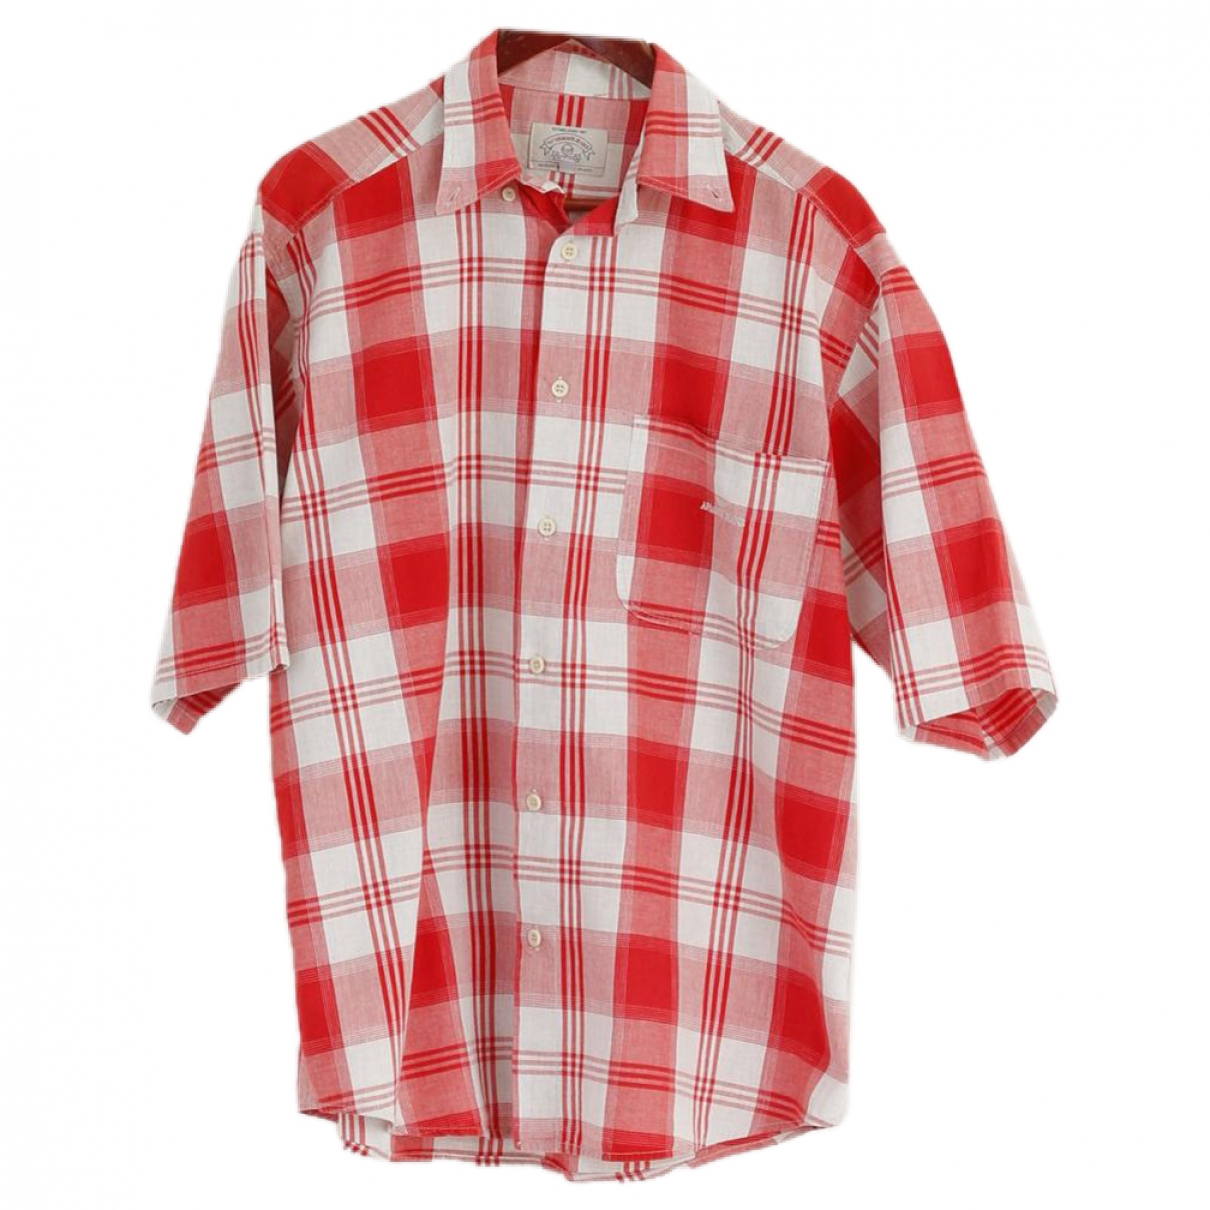 Armani Jeans \N Red Cotton Shirts for Men L International